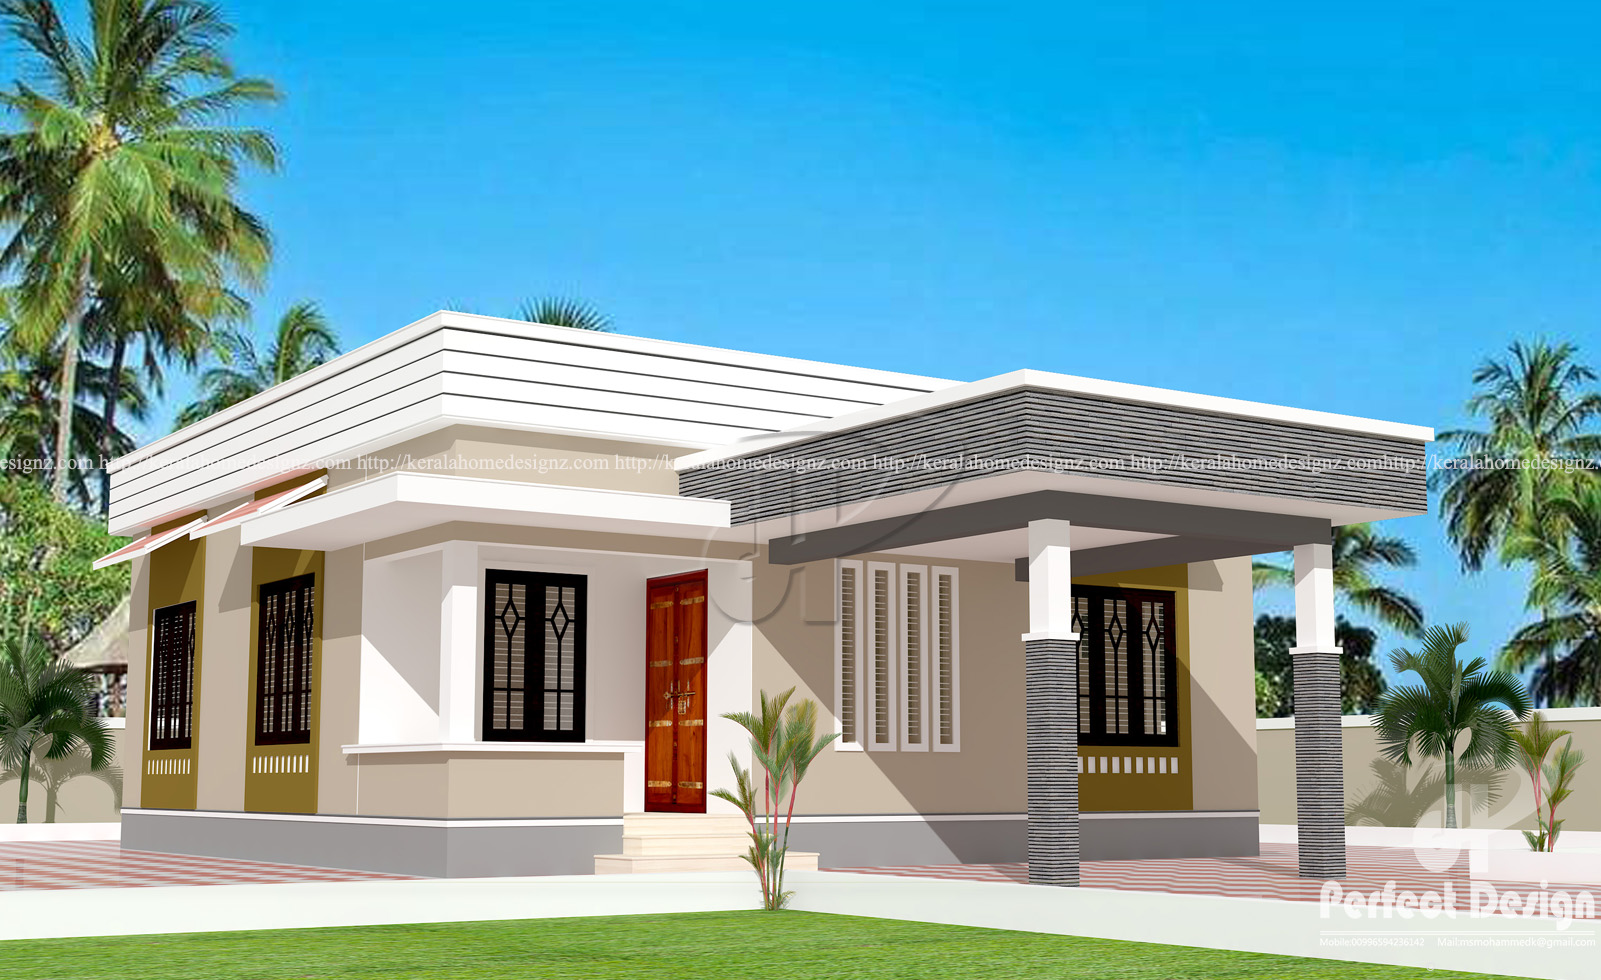 829 sq ft low cost home designs kerala home design for Low cost home design